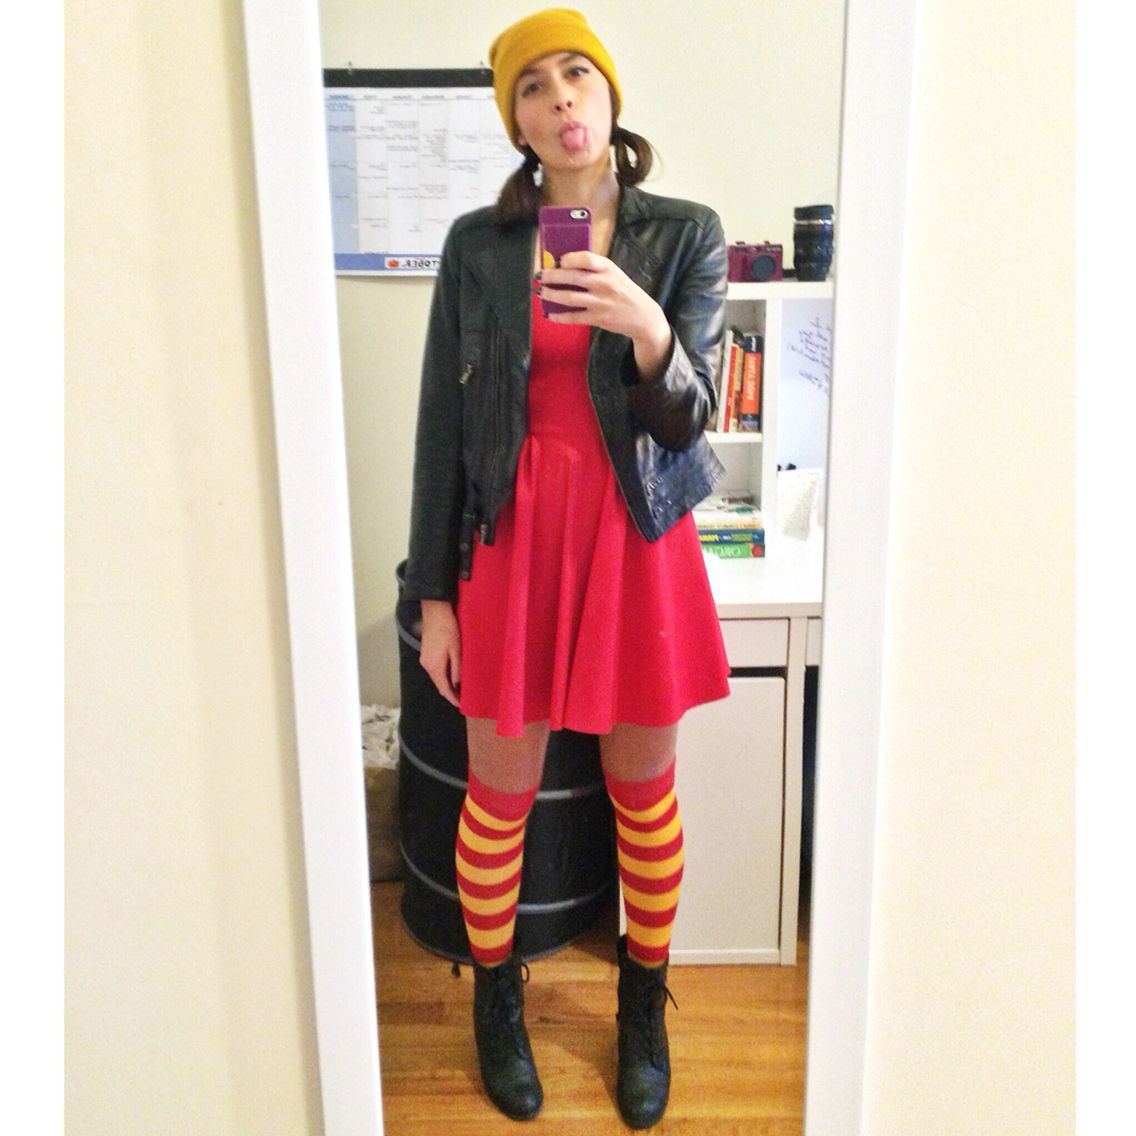 diy ashley spinelli costume for halloween! #recess #childhood #fun